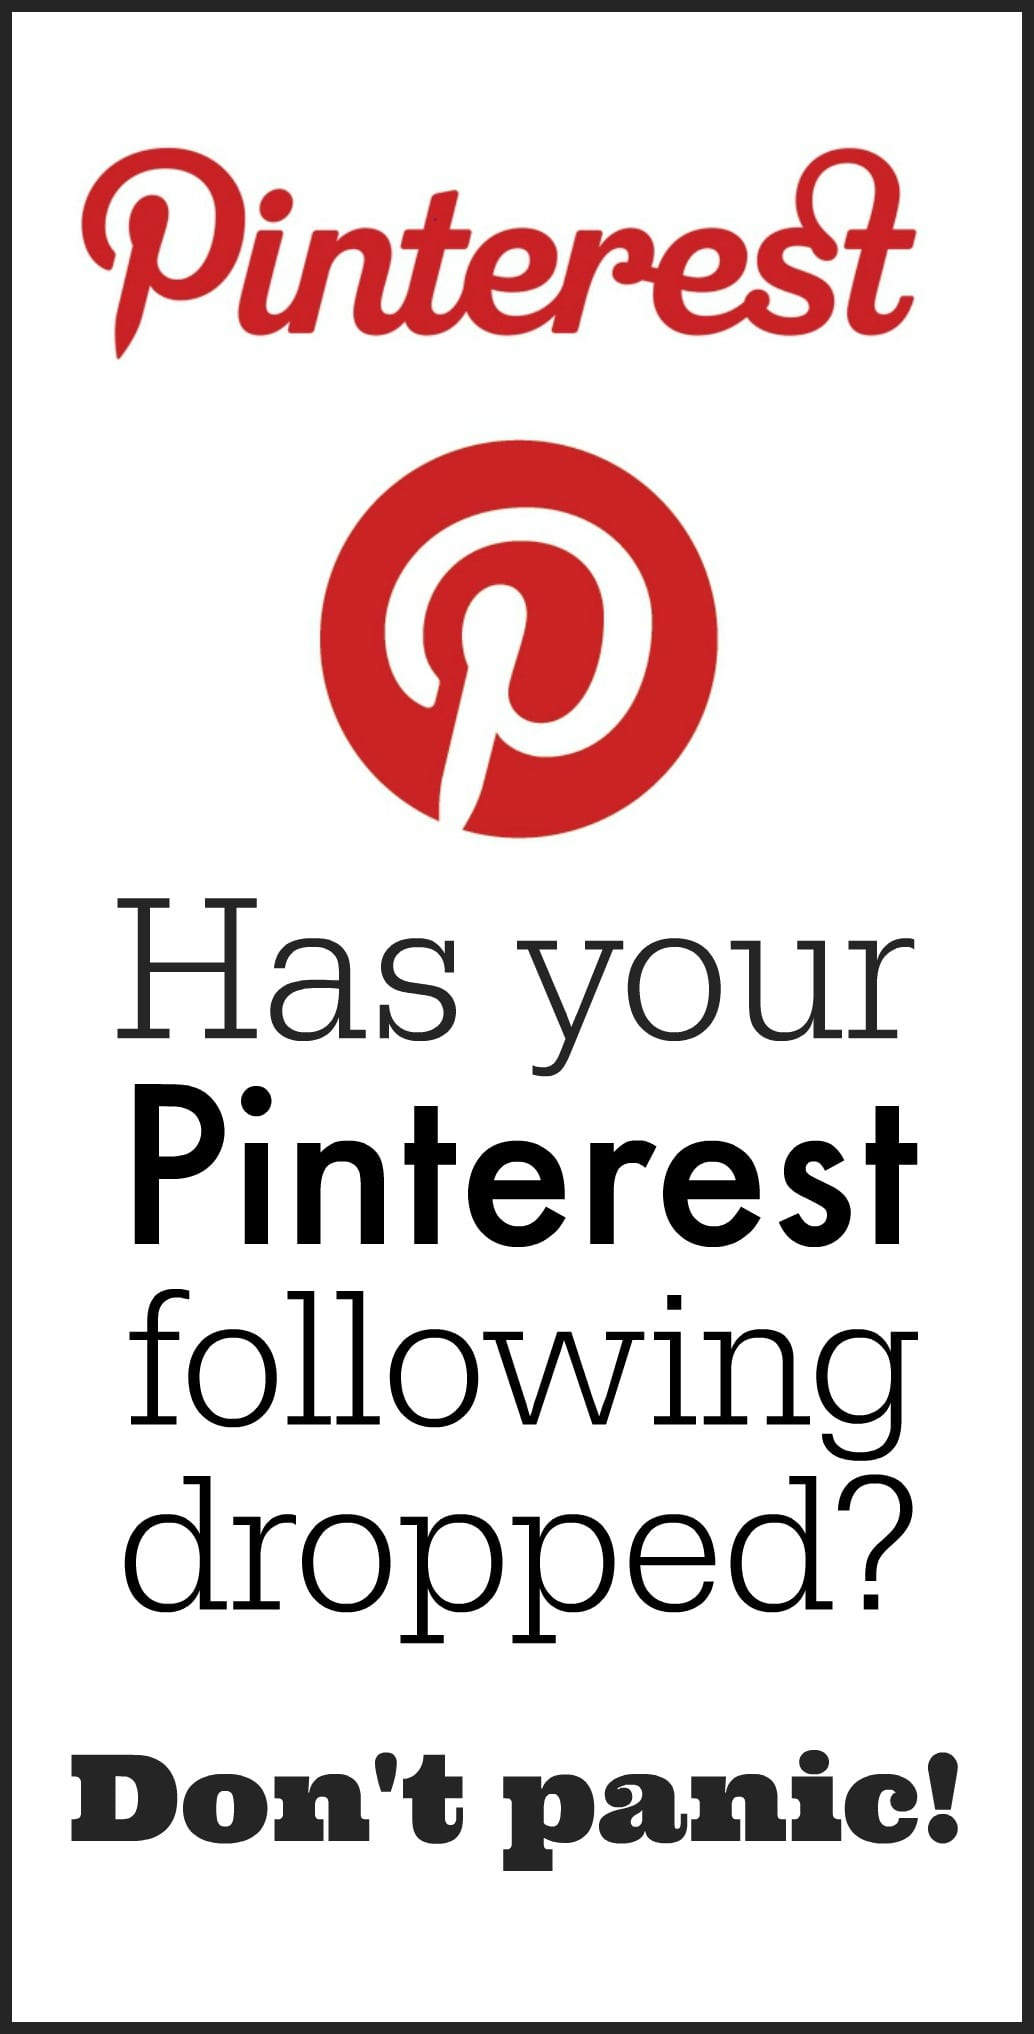 Has your Pinterest following dropped? You're not alone. Don't panic. Read more at MiloTree.com.